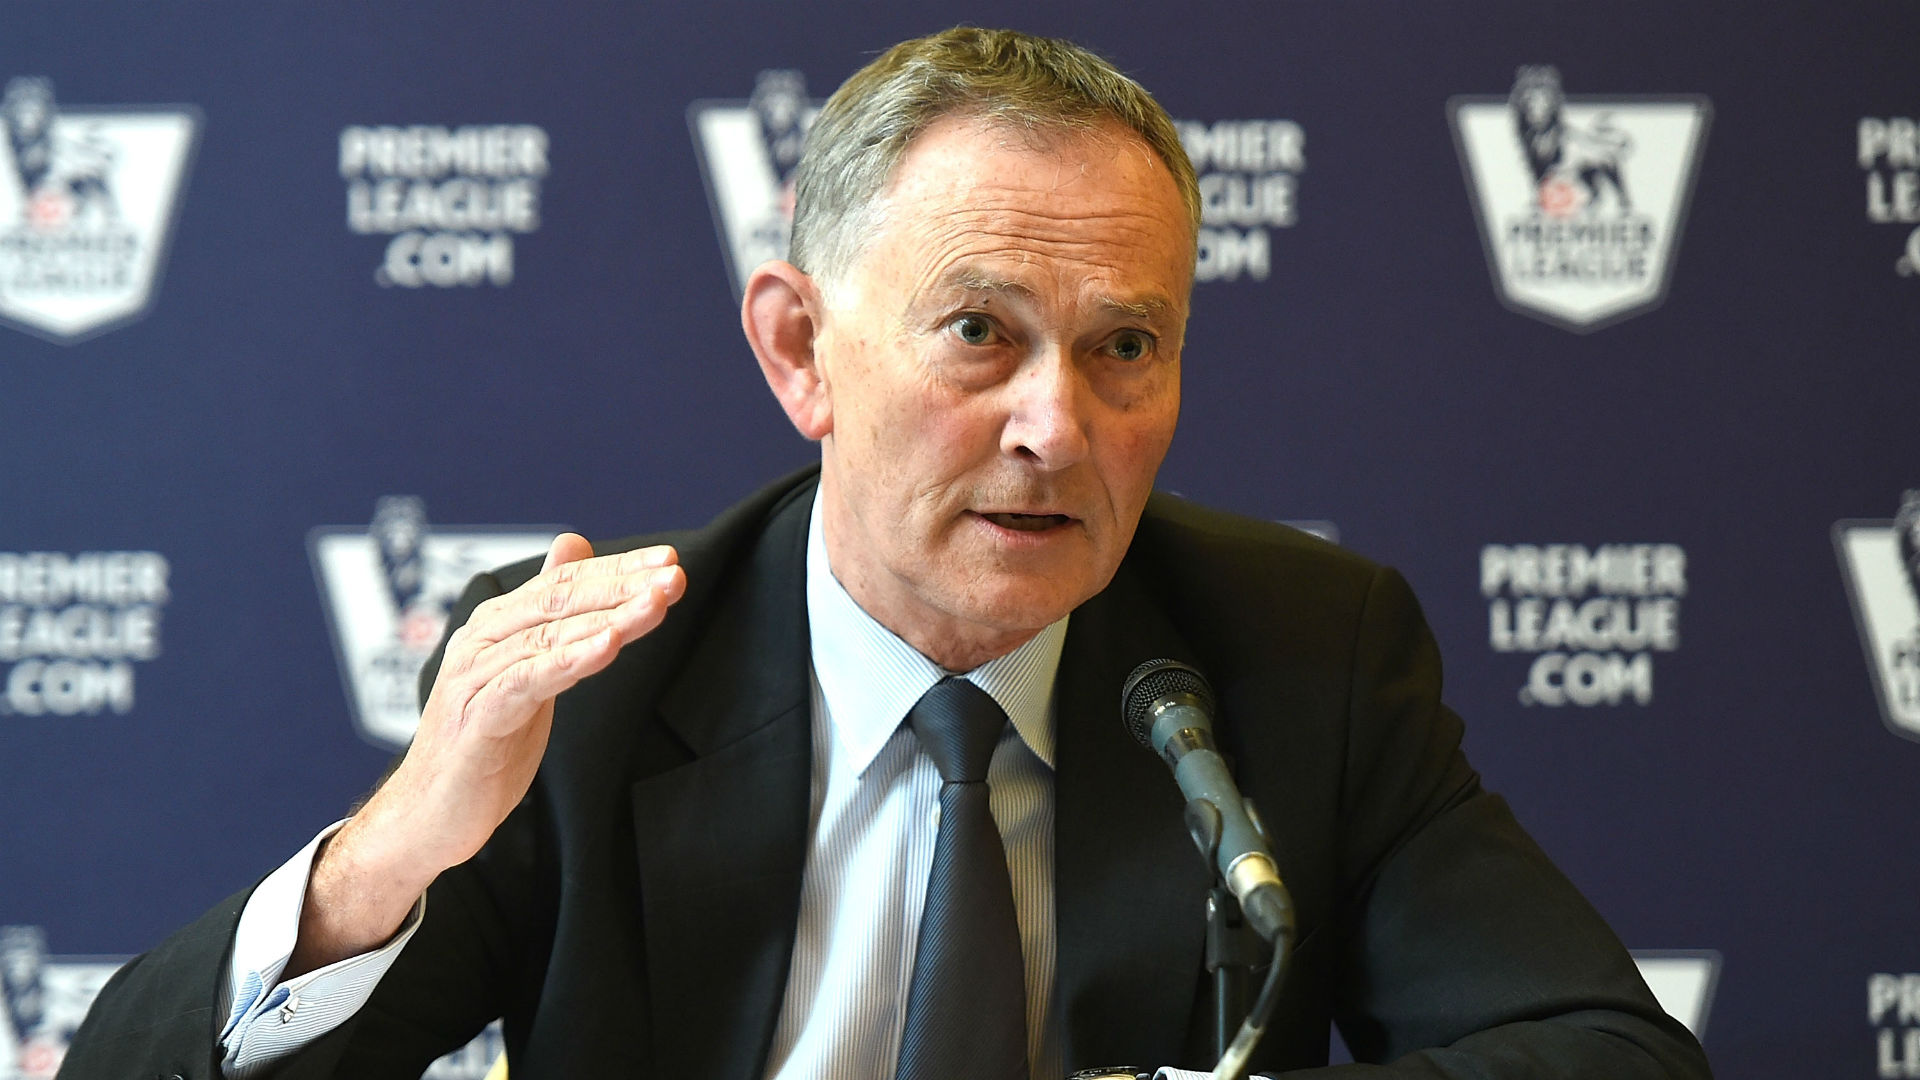 Premier League Richard Scudamore